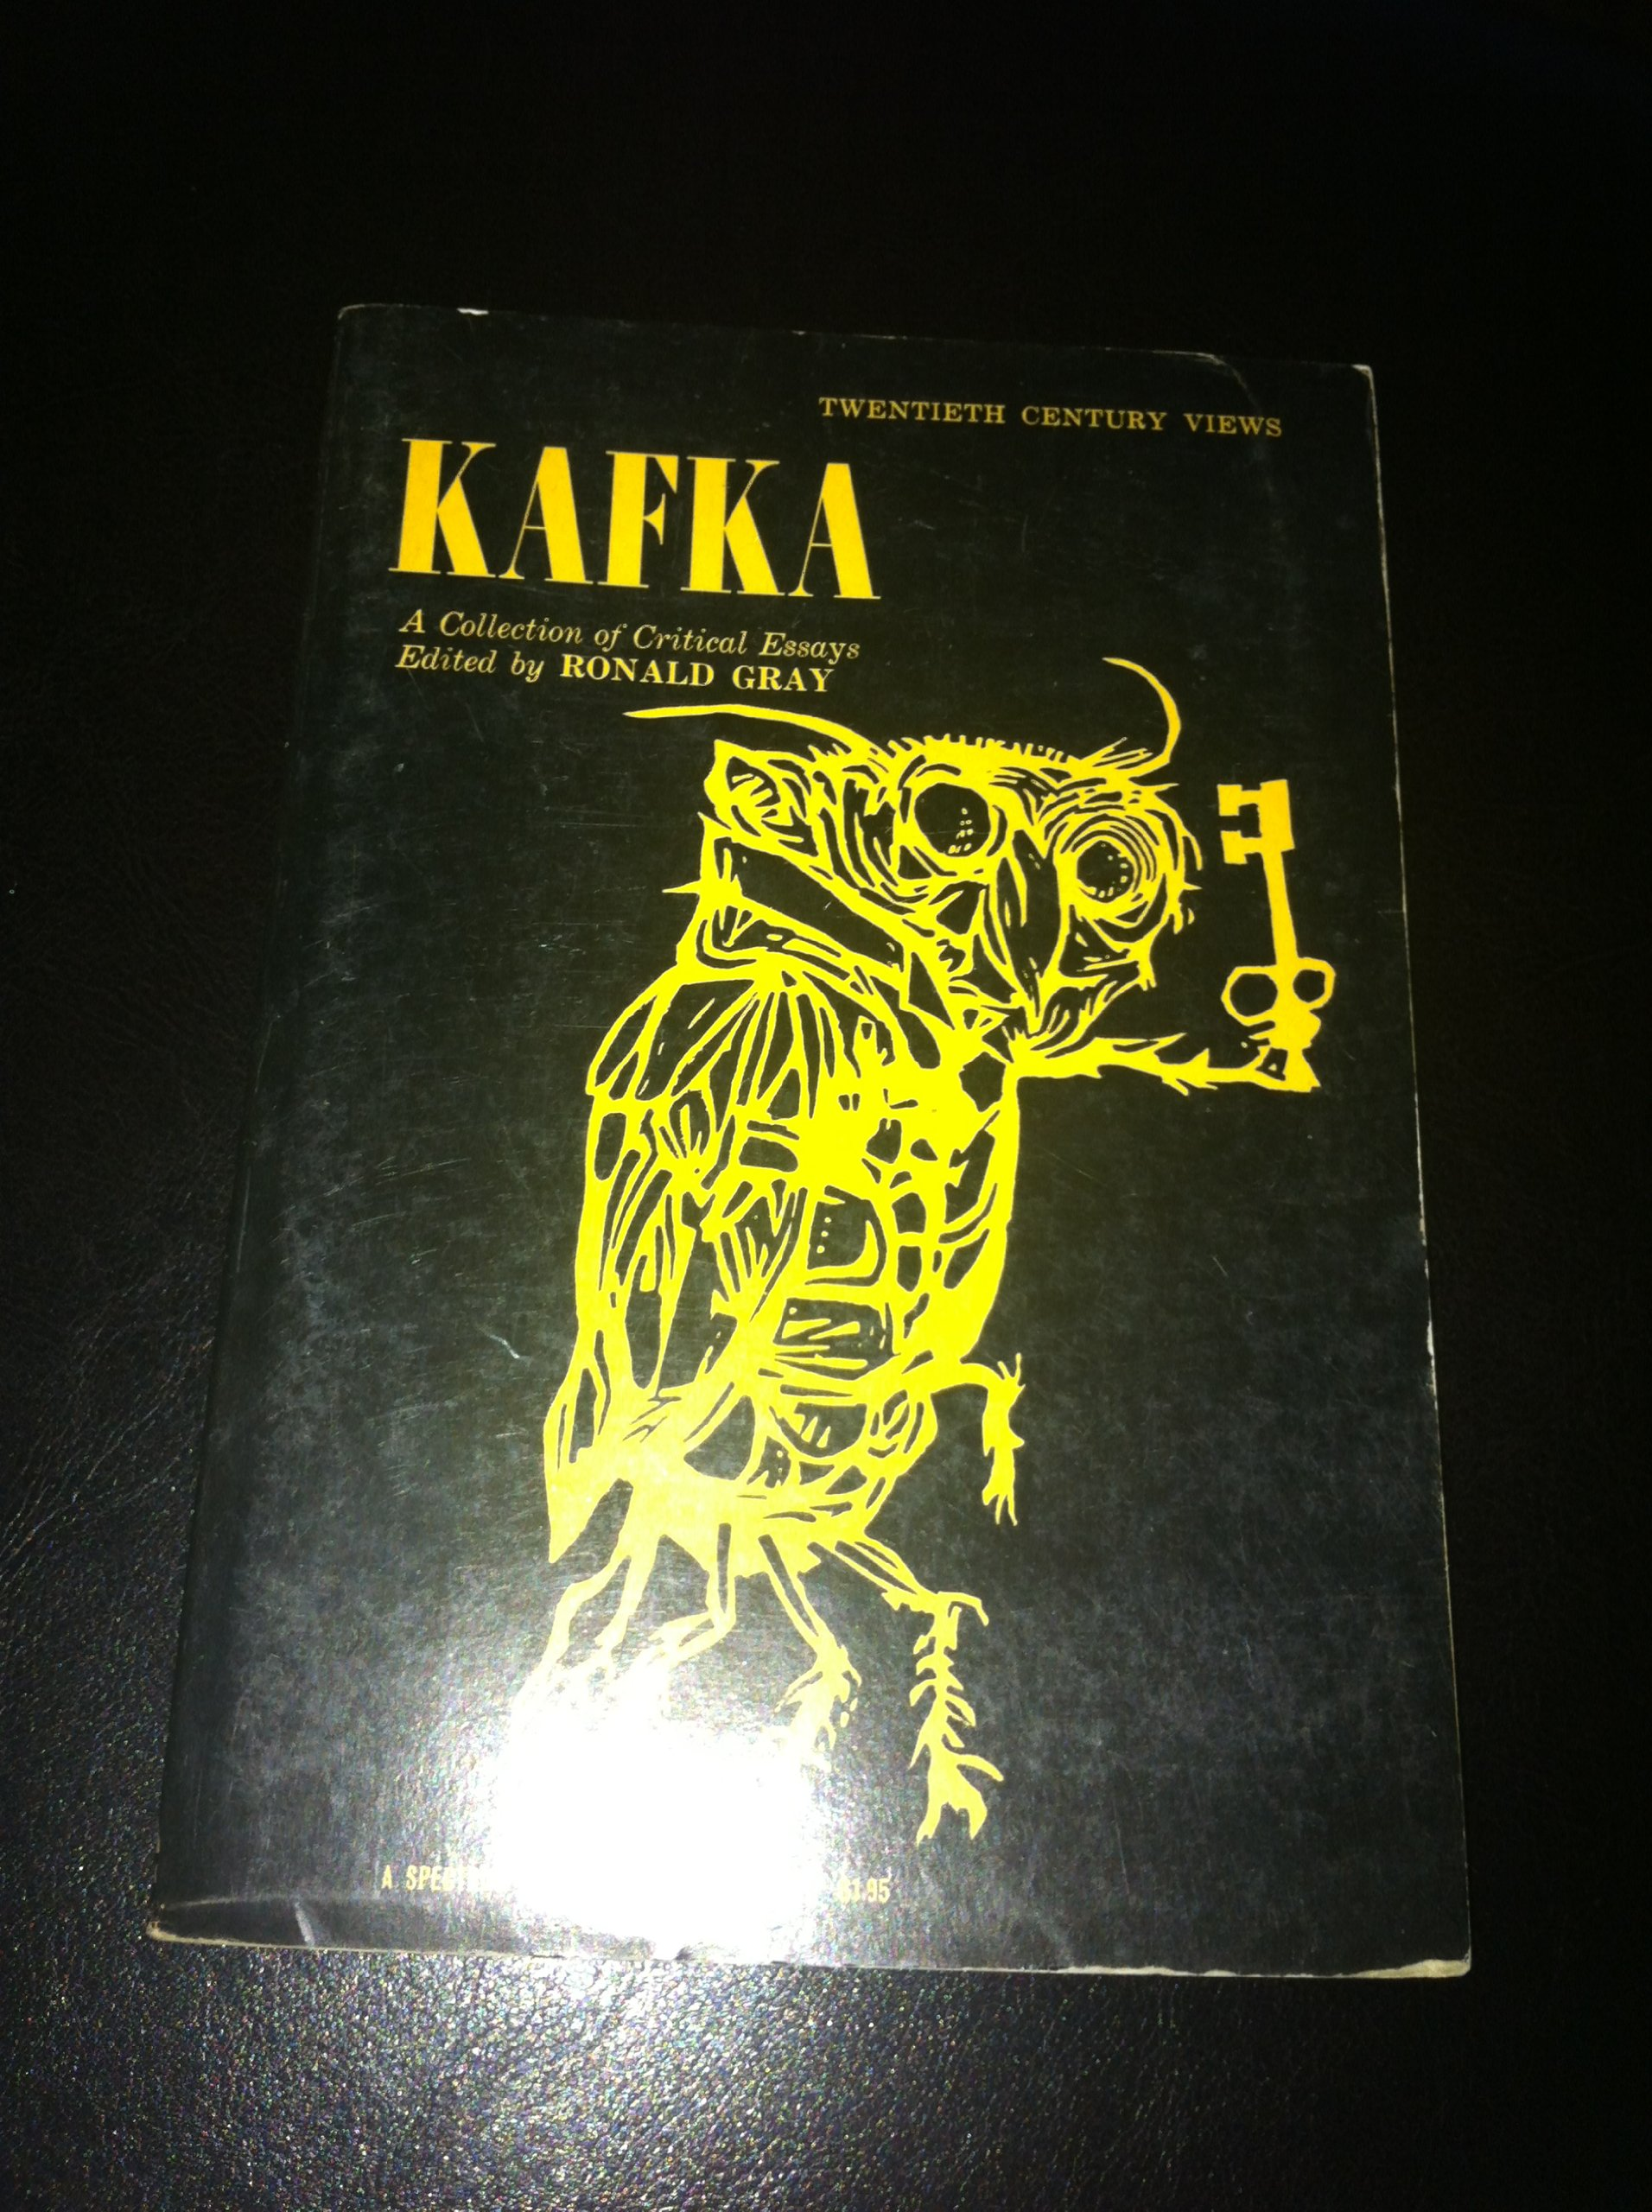 kafka a collection of critical essays amazon co uk r gray books